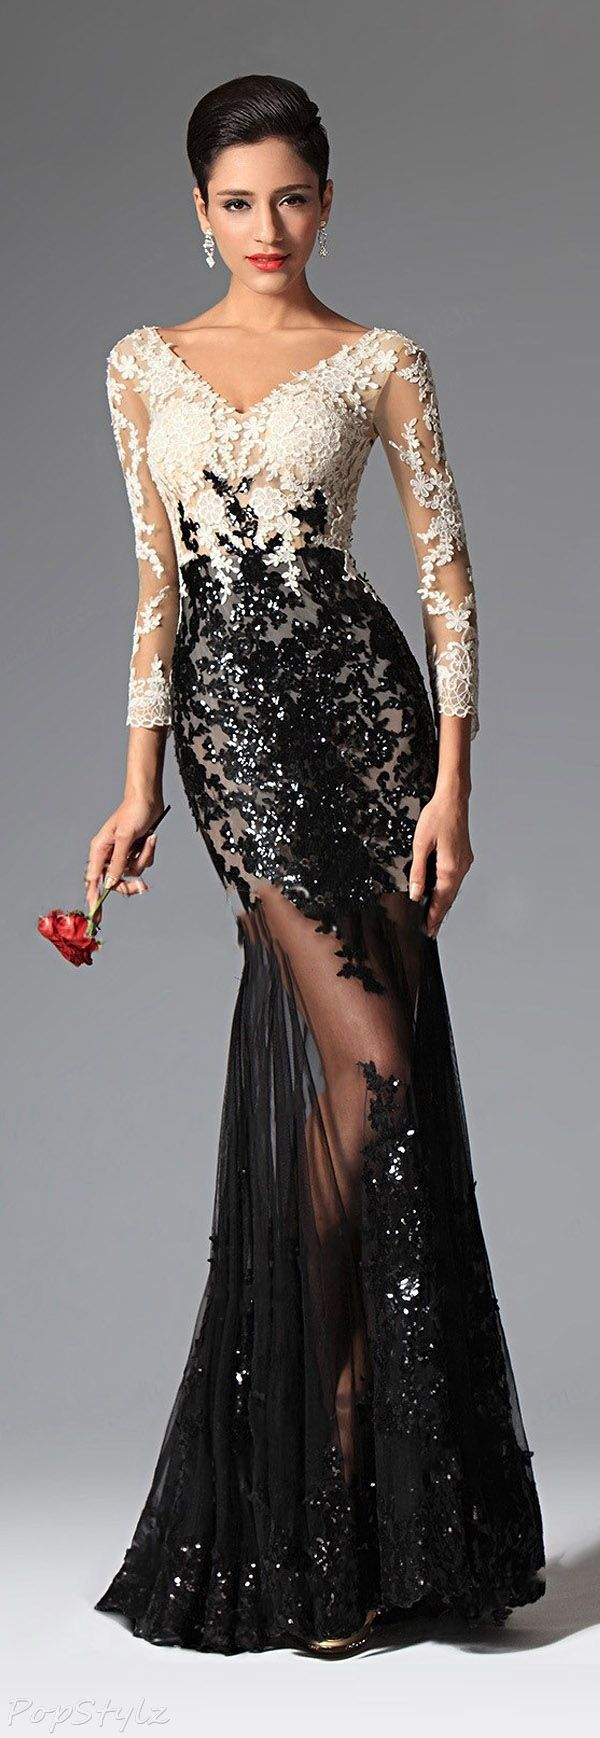 Edressit sequin tulle u lace sleeves evening gown prom